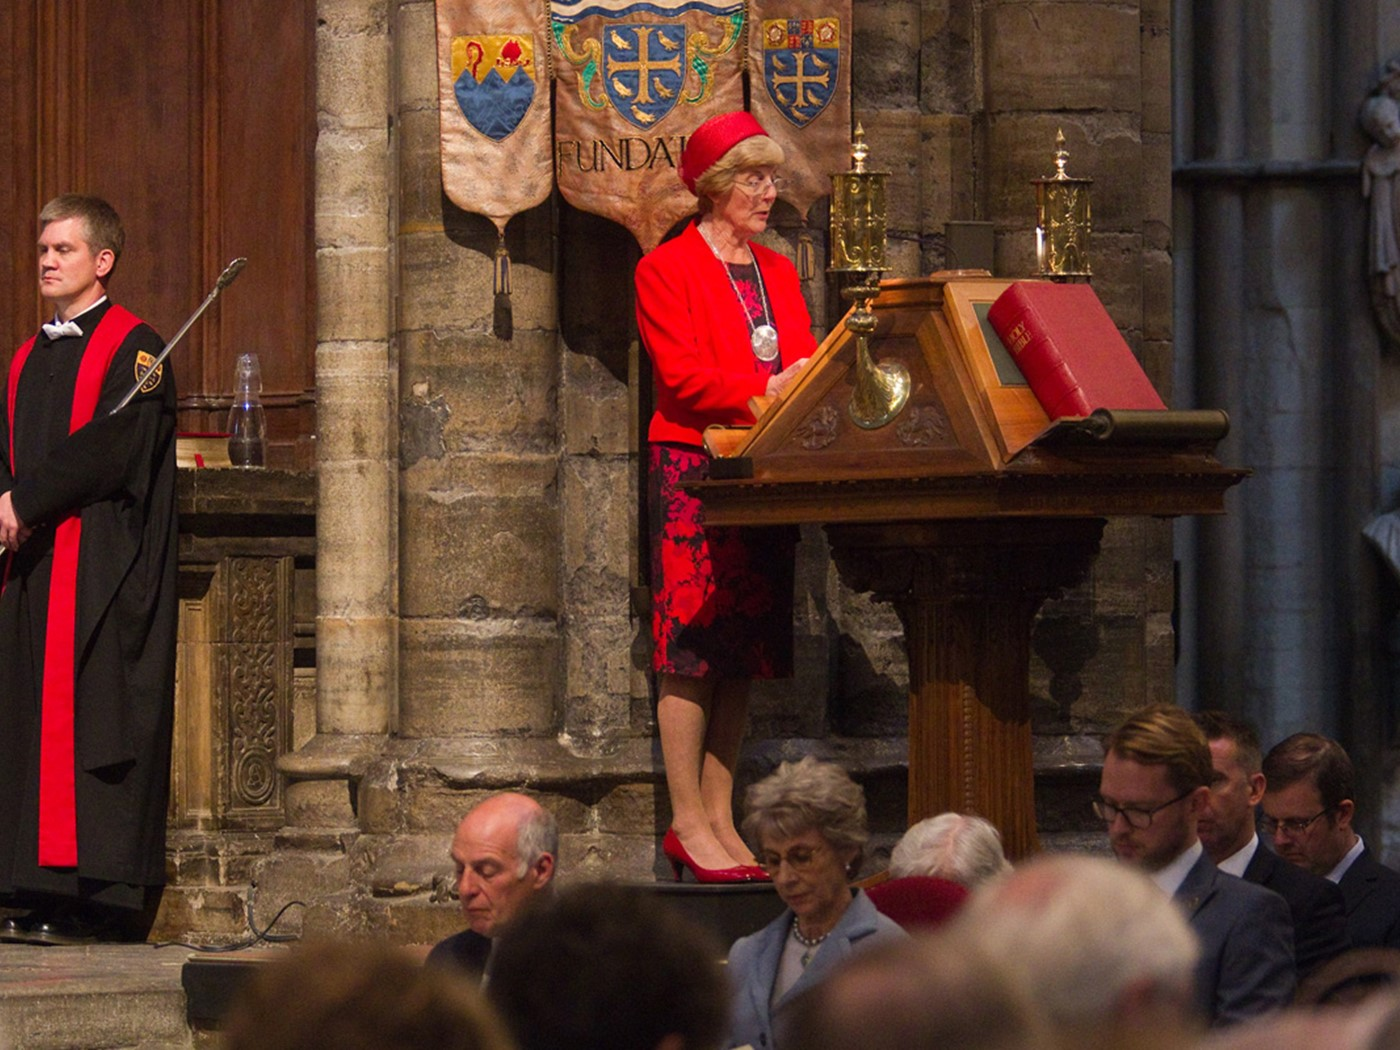 June Robinson BEM, Member of The Arts Society Leatherhead and Chairman of Trustees, reads Colossians 1:9b-20